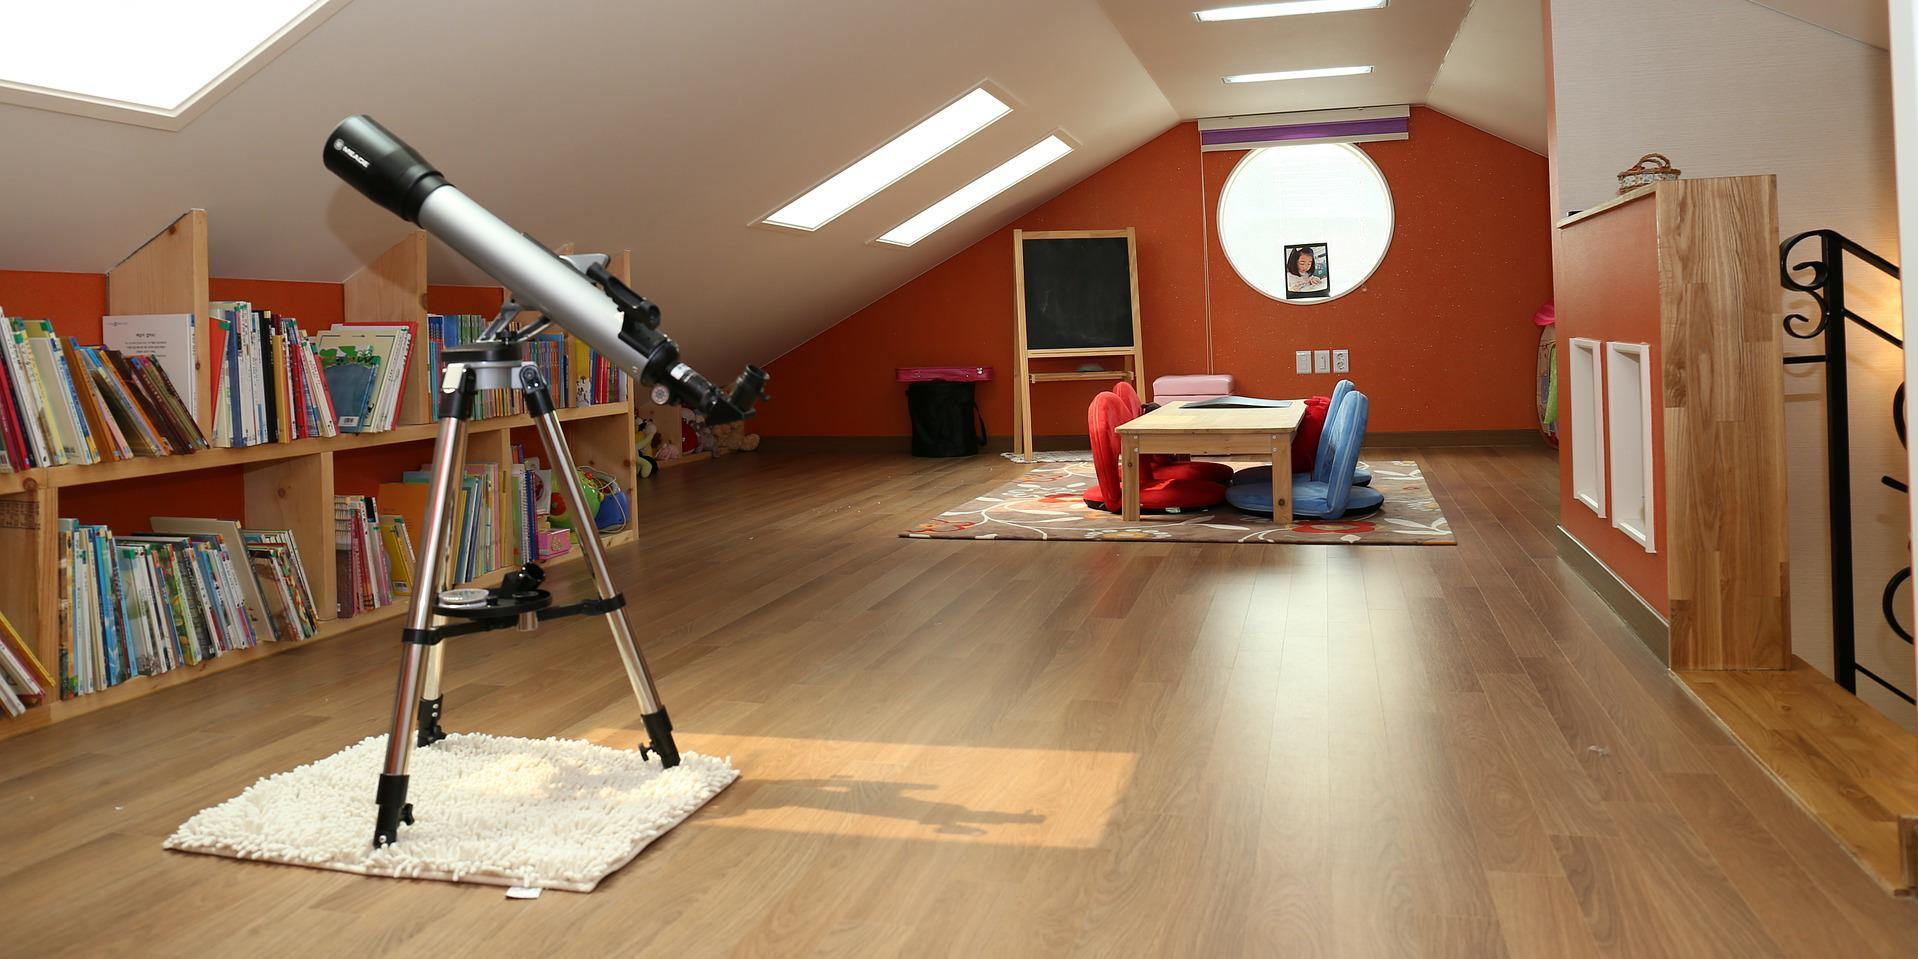 Loft conversion - how to do it right